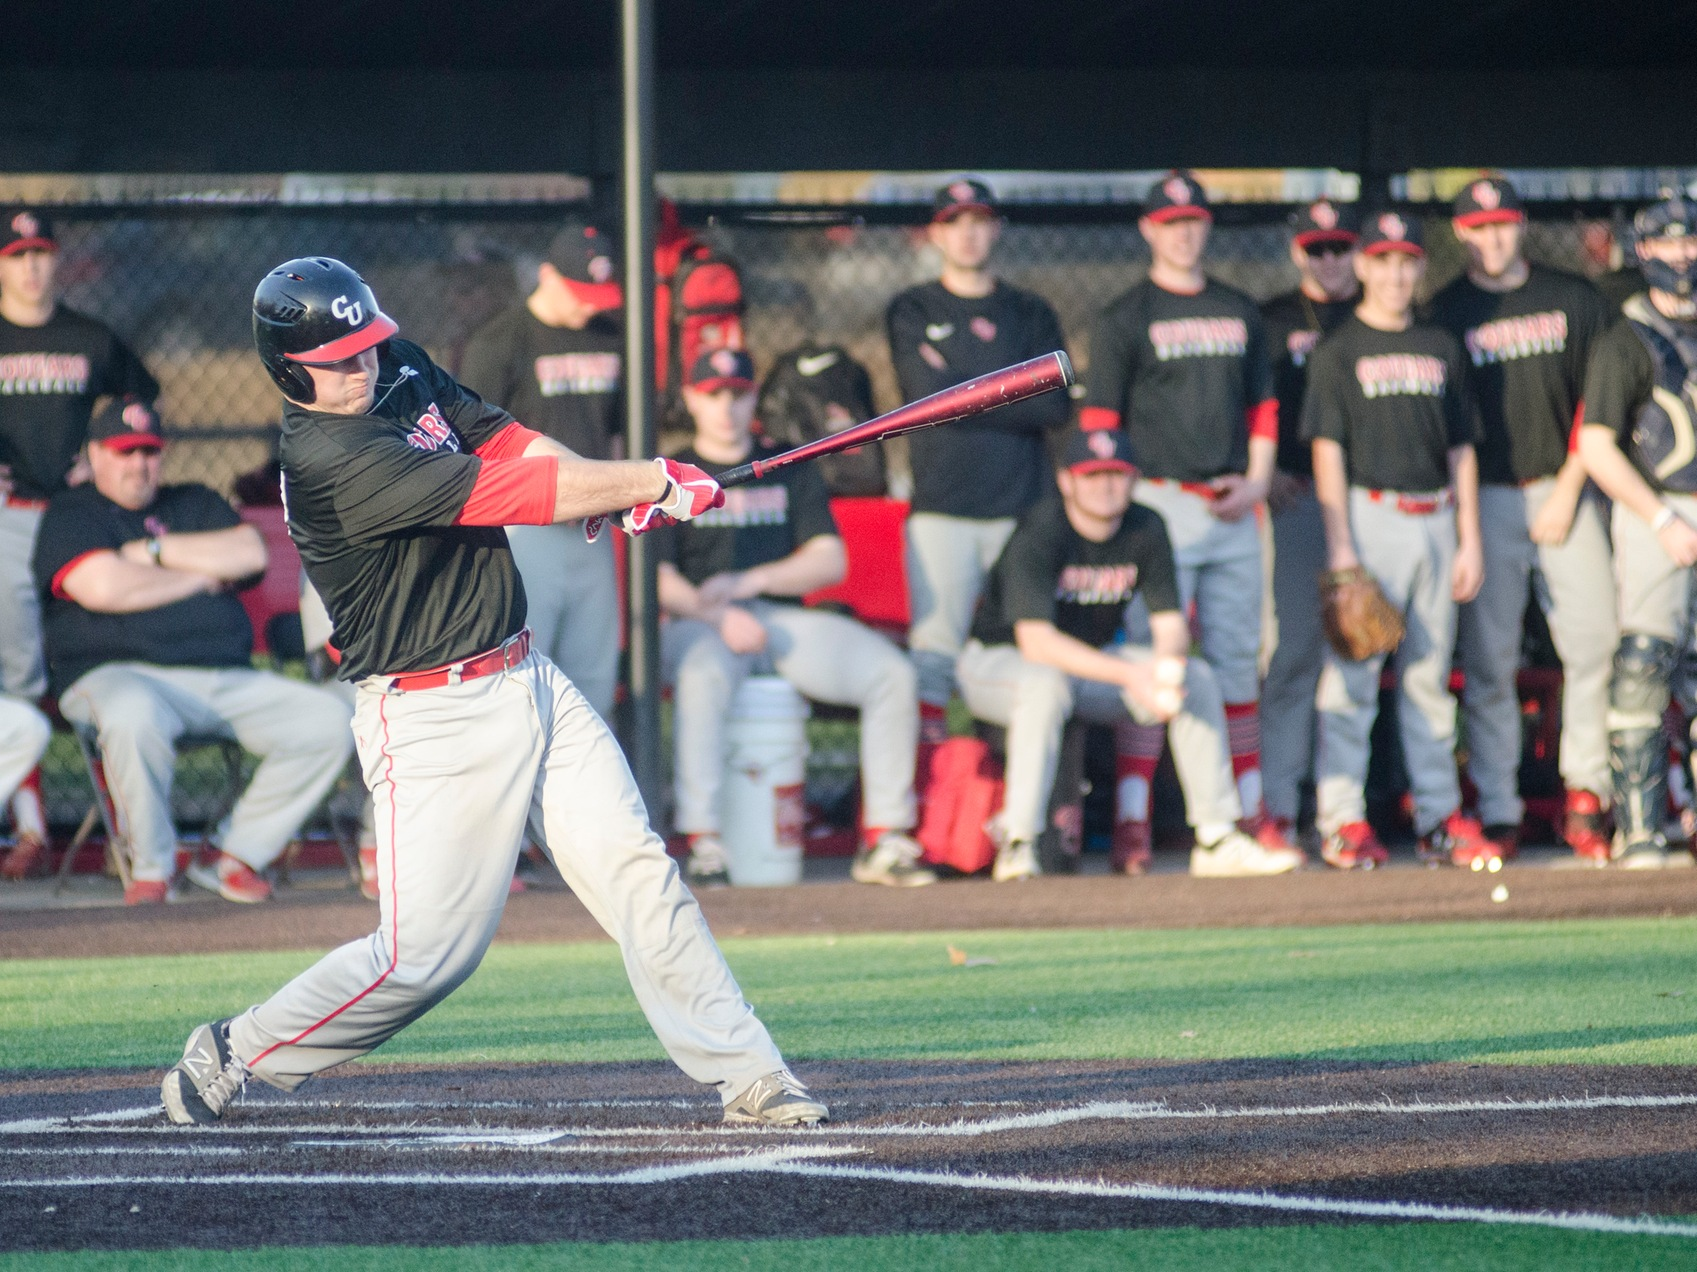 Cougars Crush Elms on Opening Day, 9-2